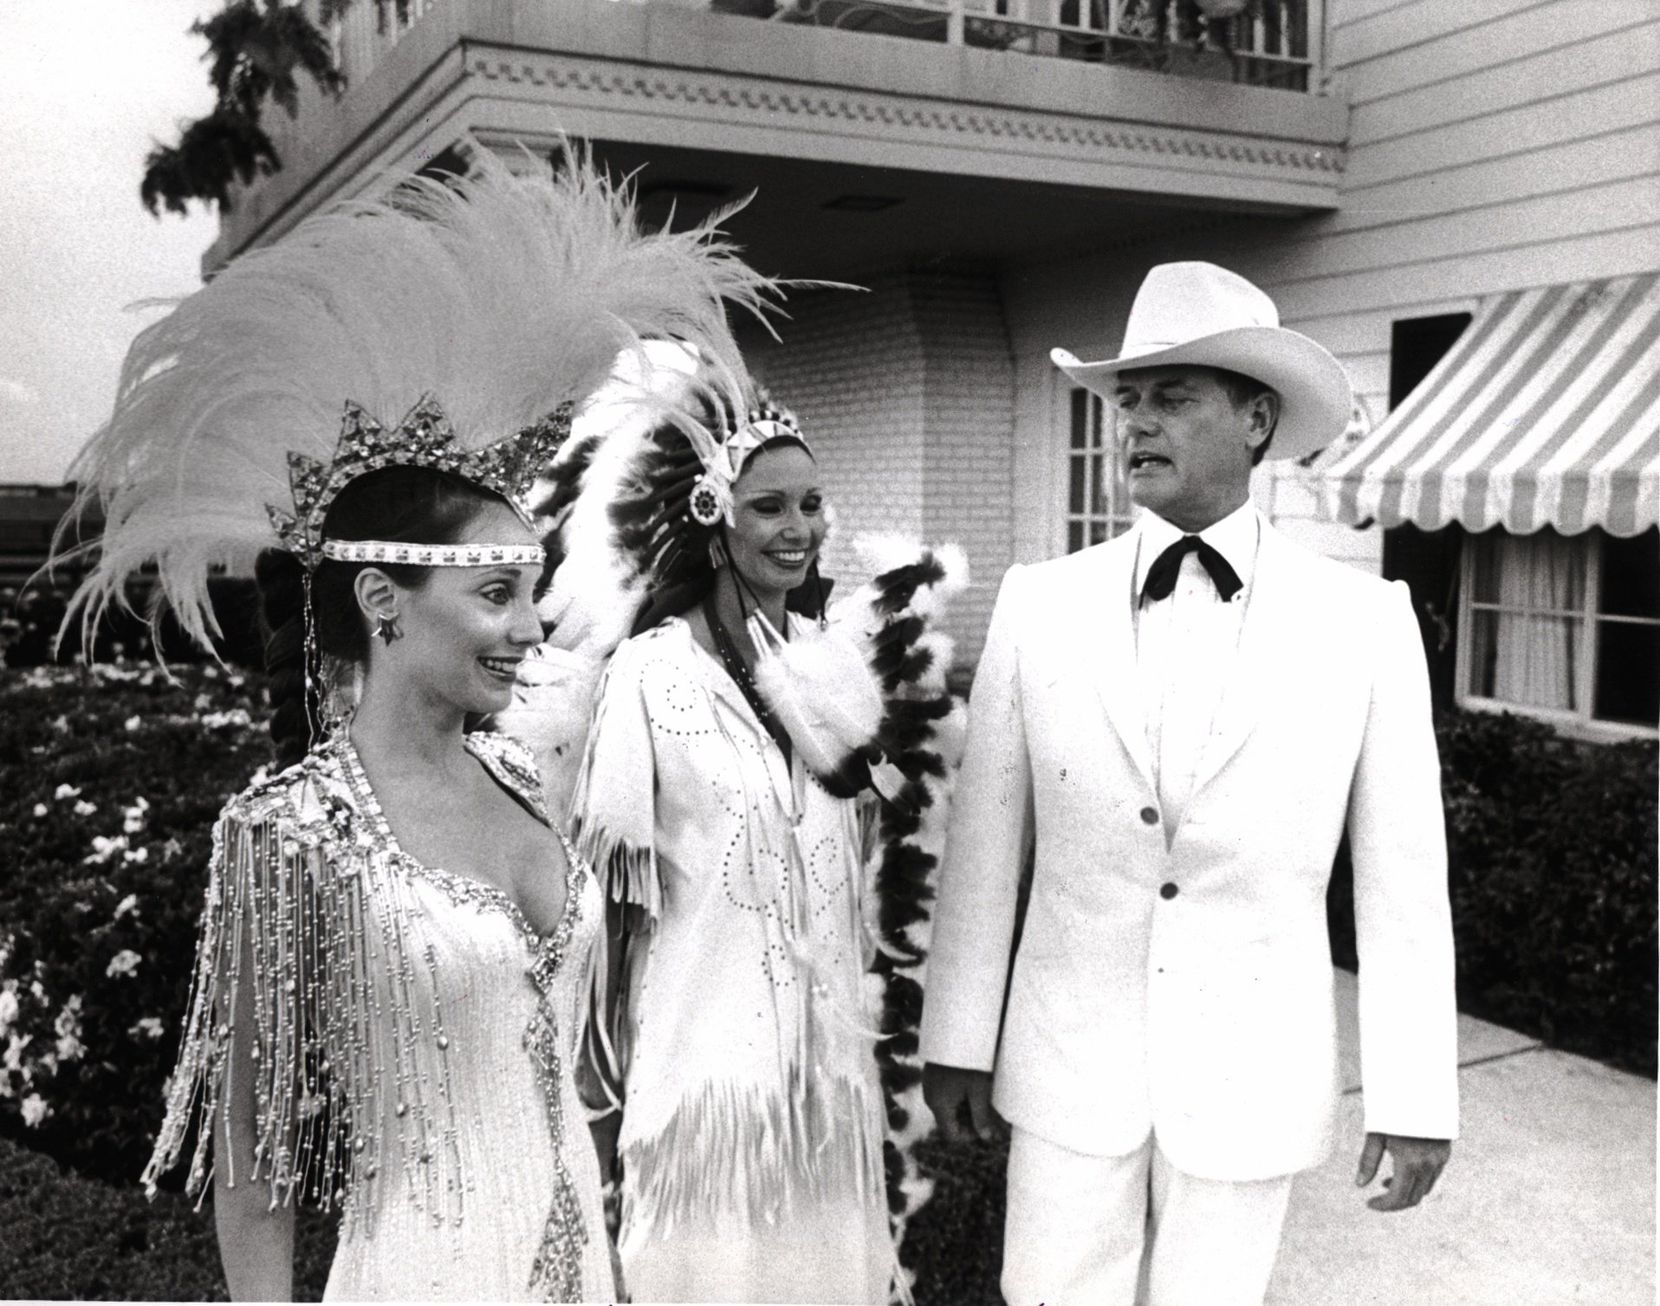 Larry Hagman wore his white, doe-skin tuxedo to the 1981 Cattle Baron's Ball where he posed with co-chairs  Melinda Wynn and Frances Sheperd. Later in the evening, he was covered in mud.